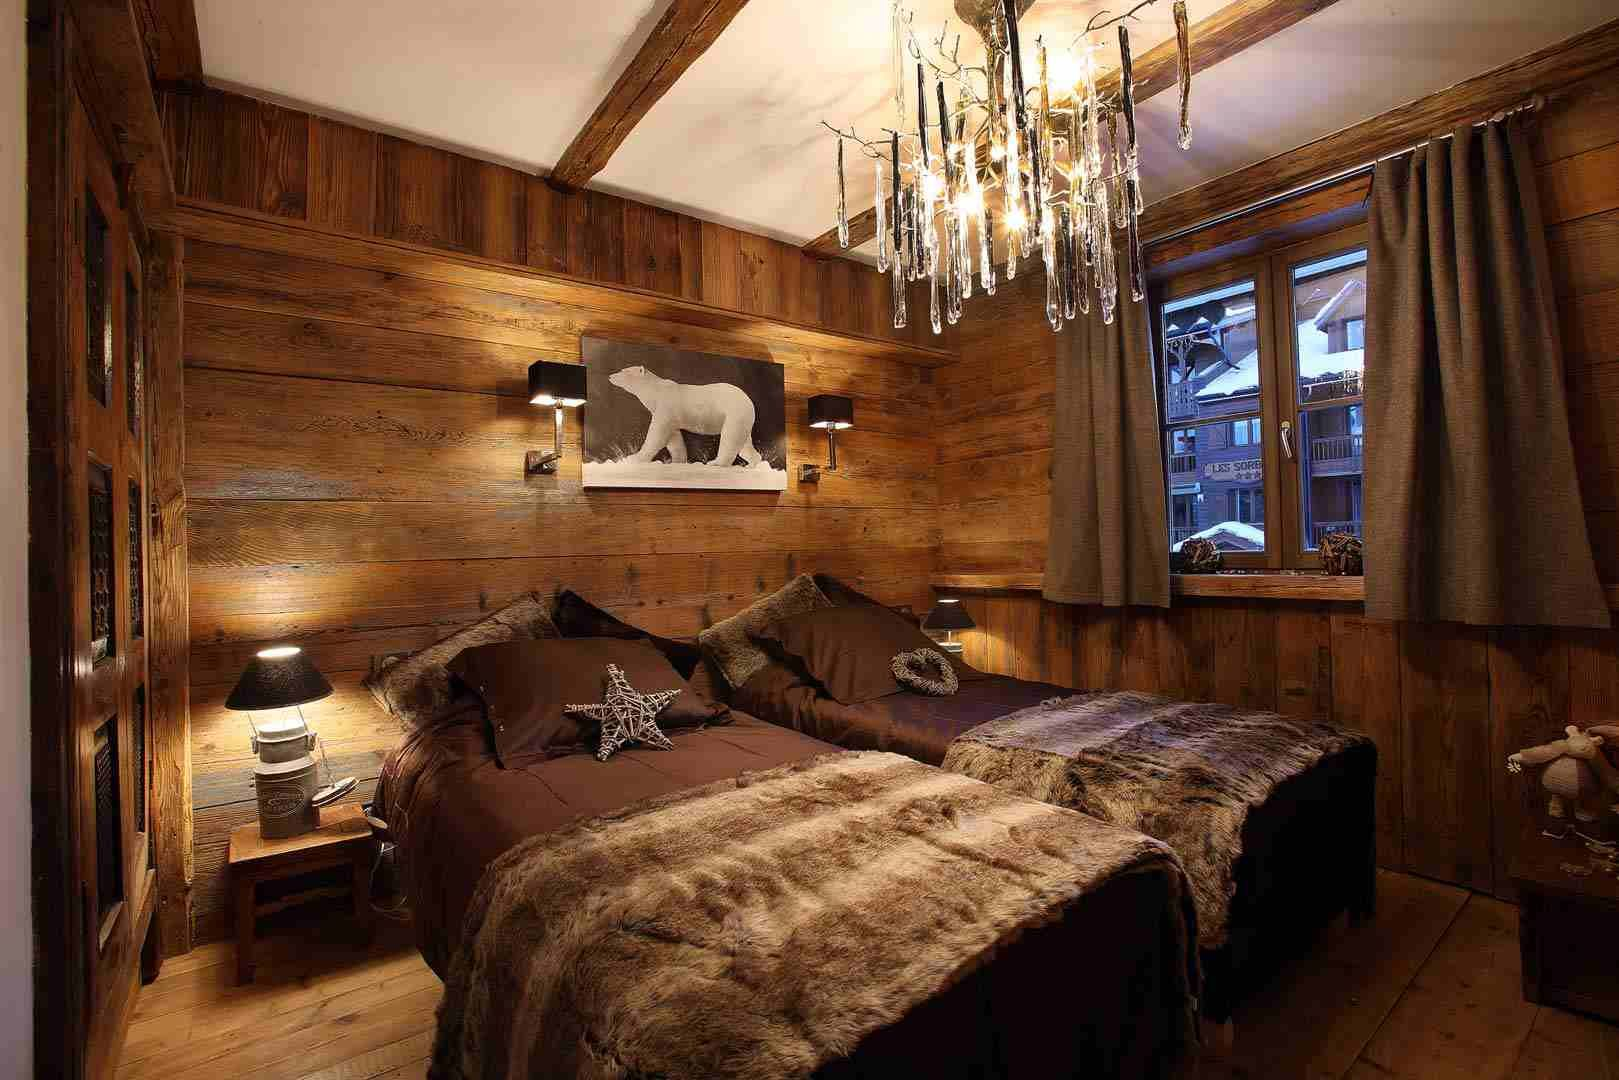 D co int rieur style chalet id es pour atmosph re for Interieur chalet montagne